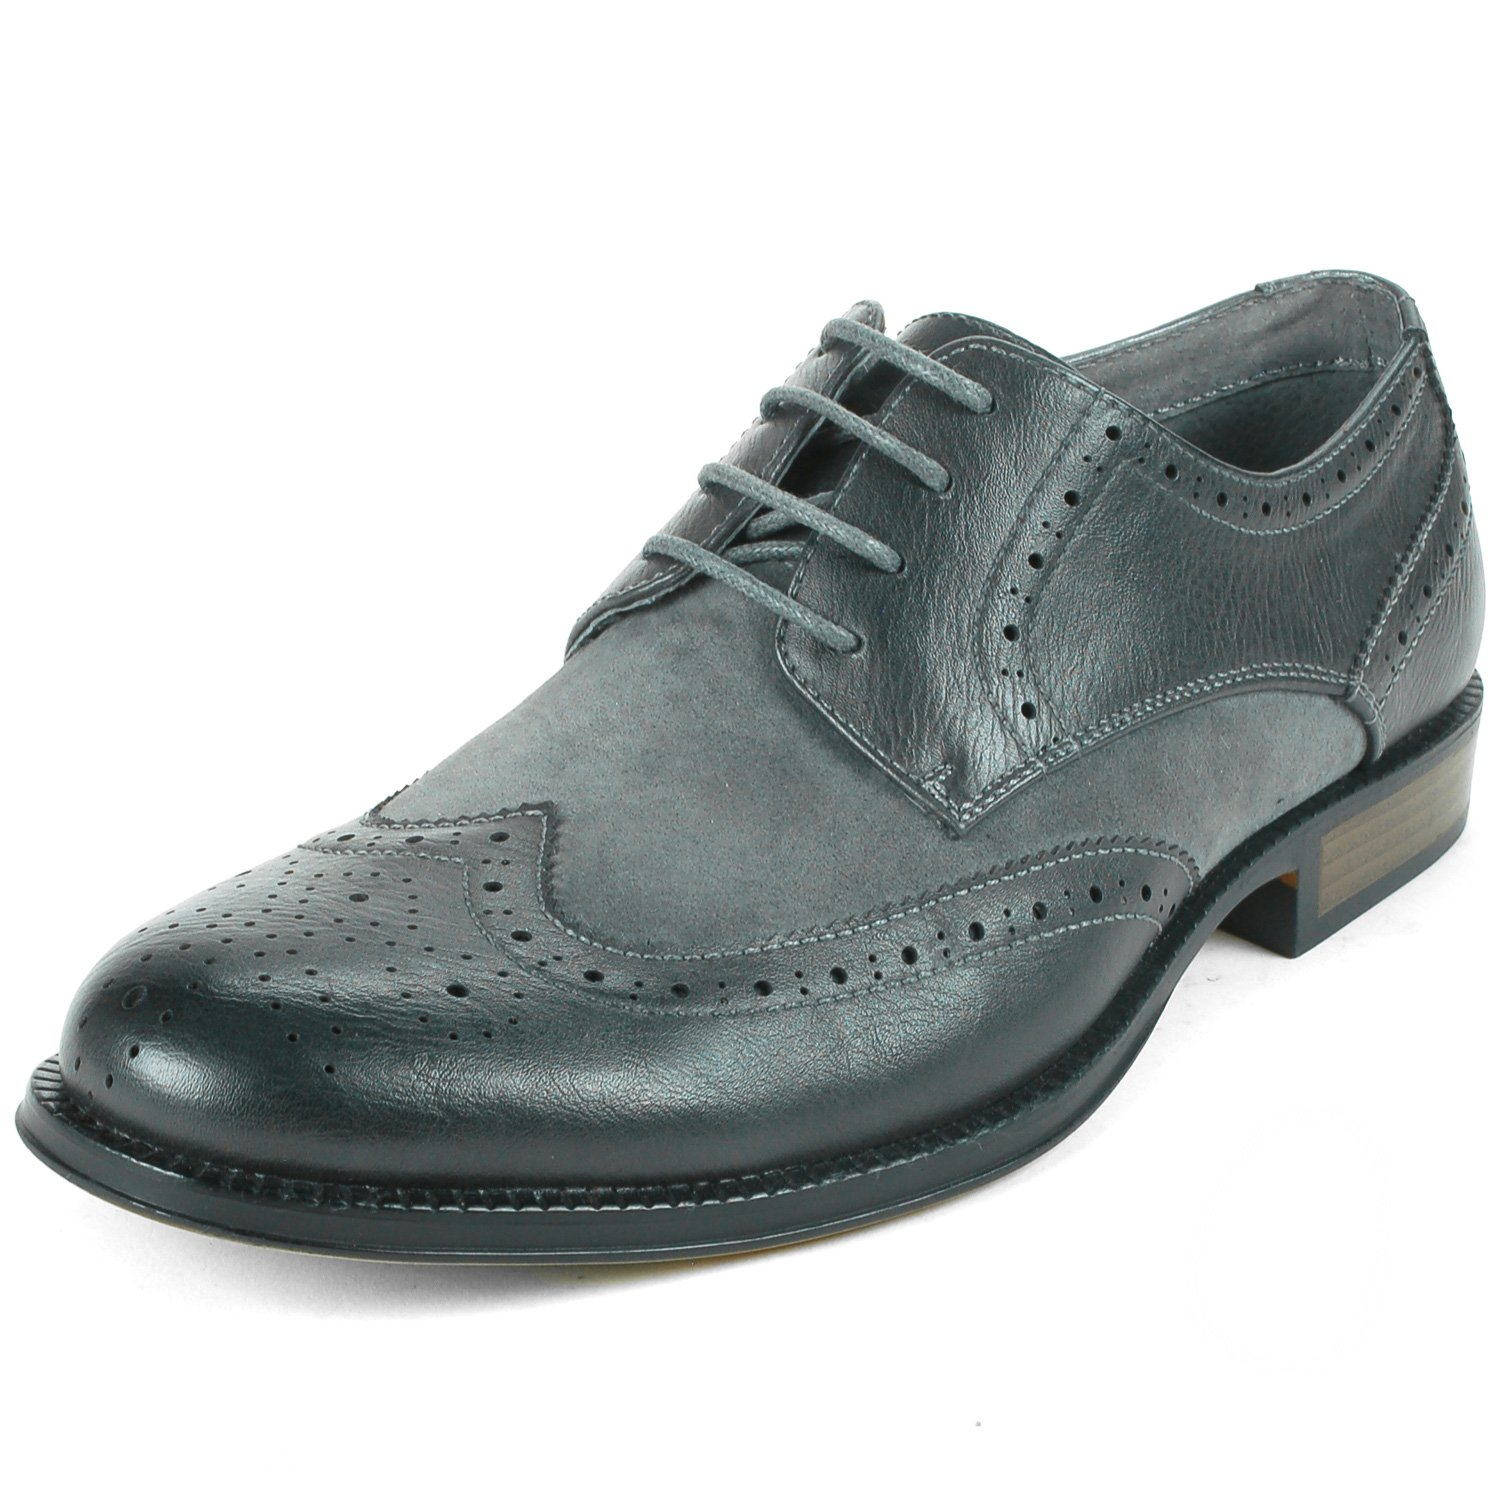 1950s Style Mens Shoes  Wing Tip Oxfords Two-tone Brogue Medallion $34.99 AT vintagedancer.com